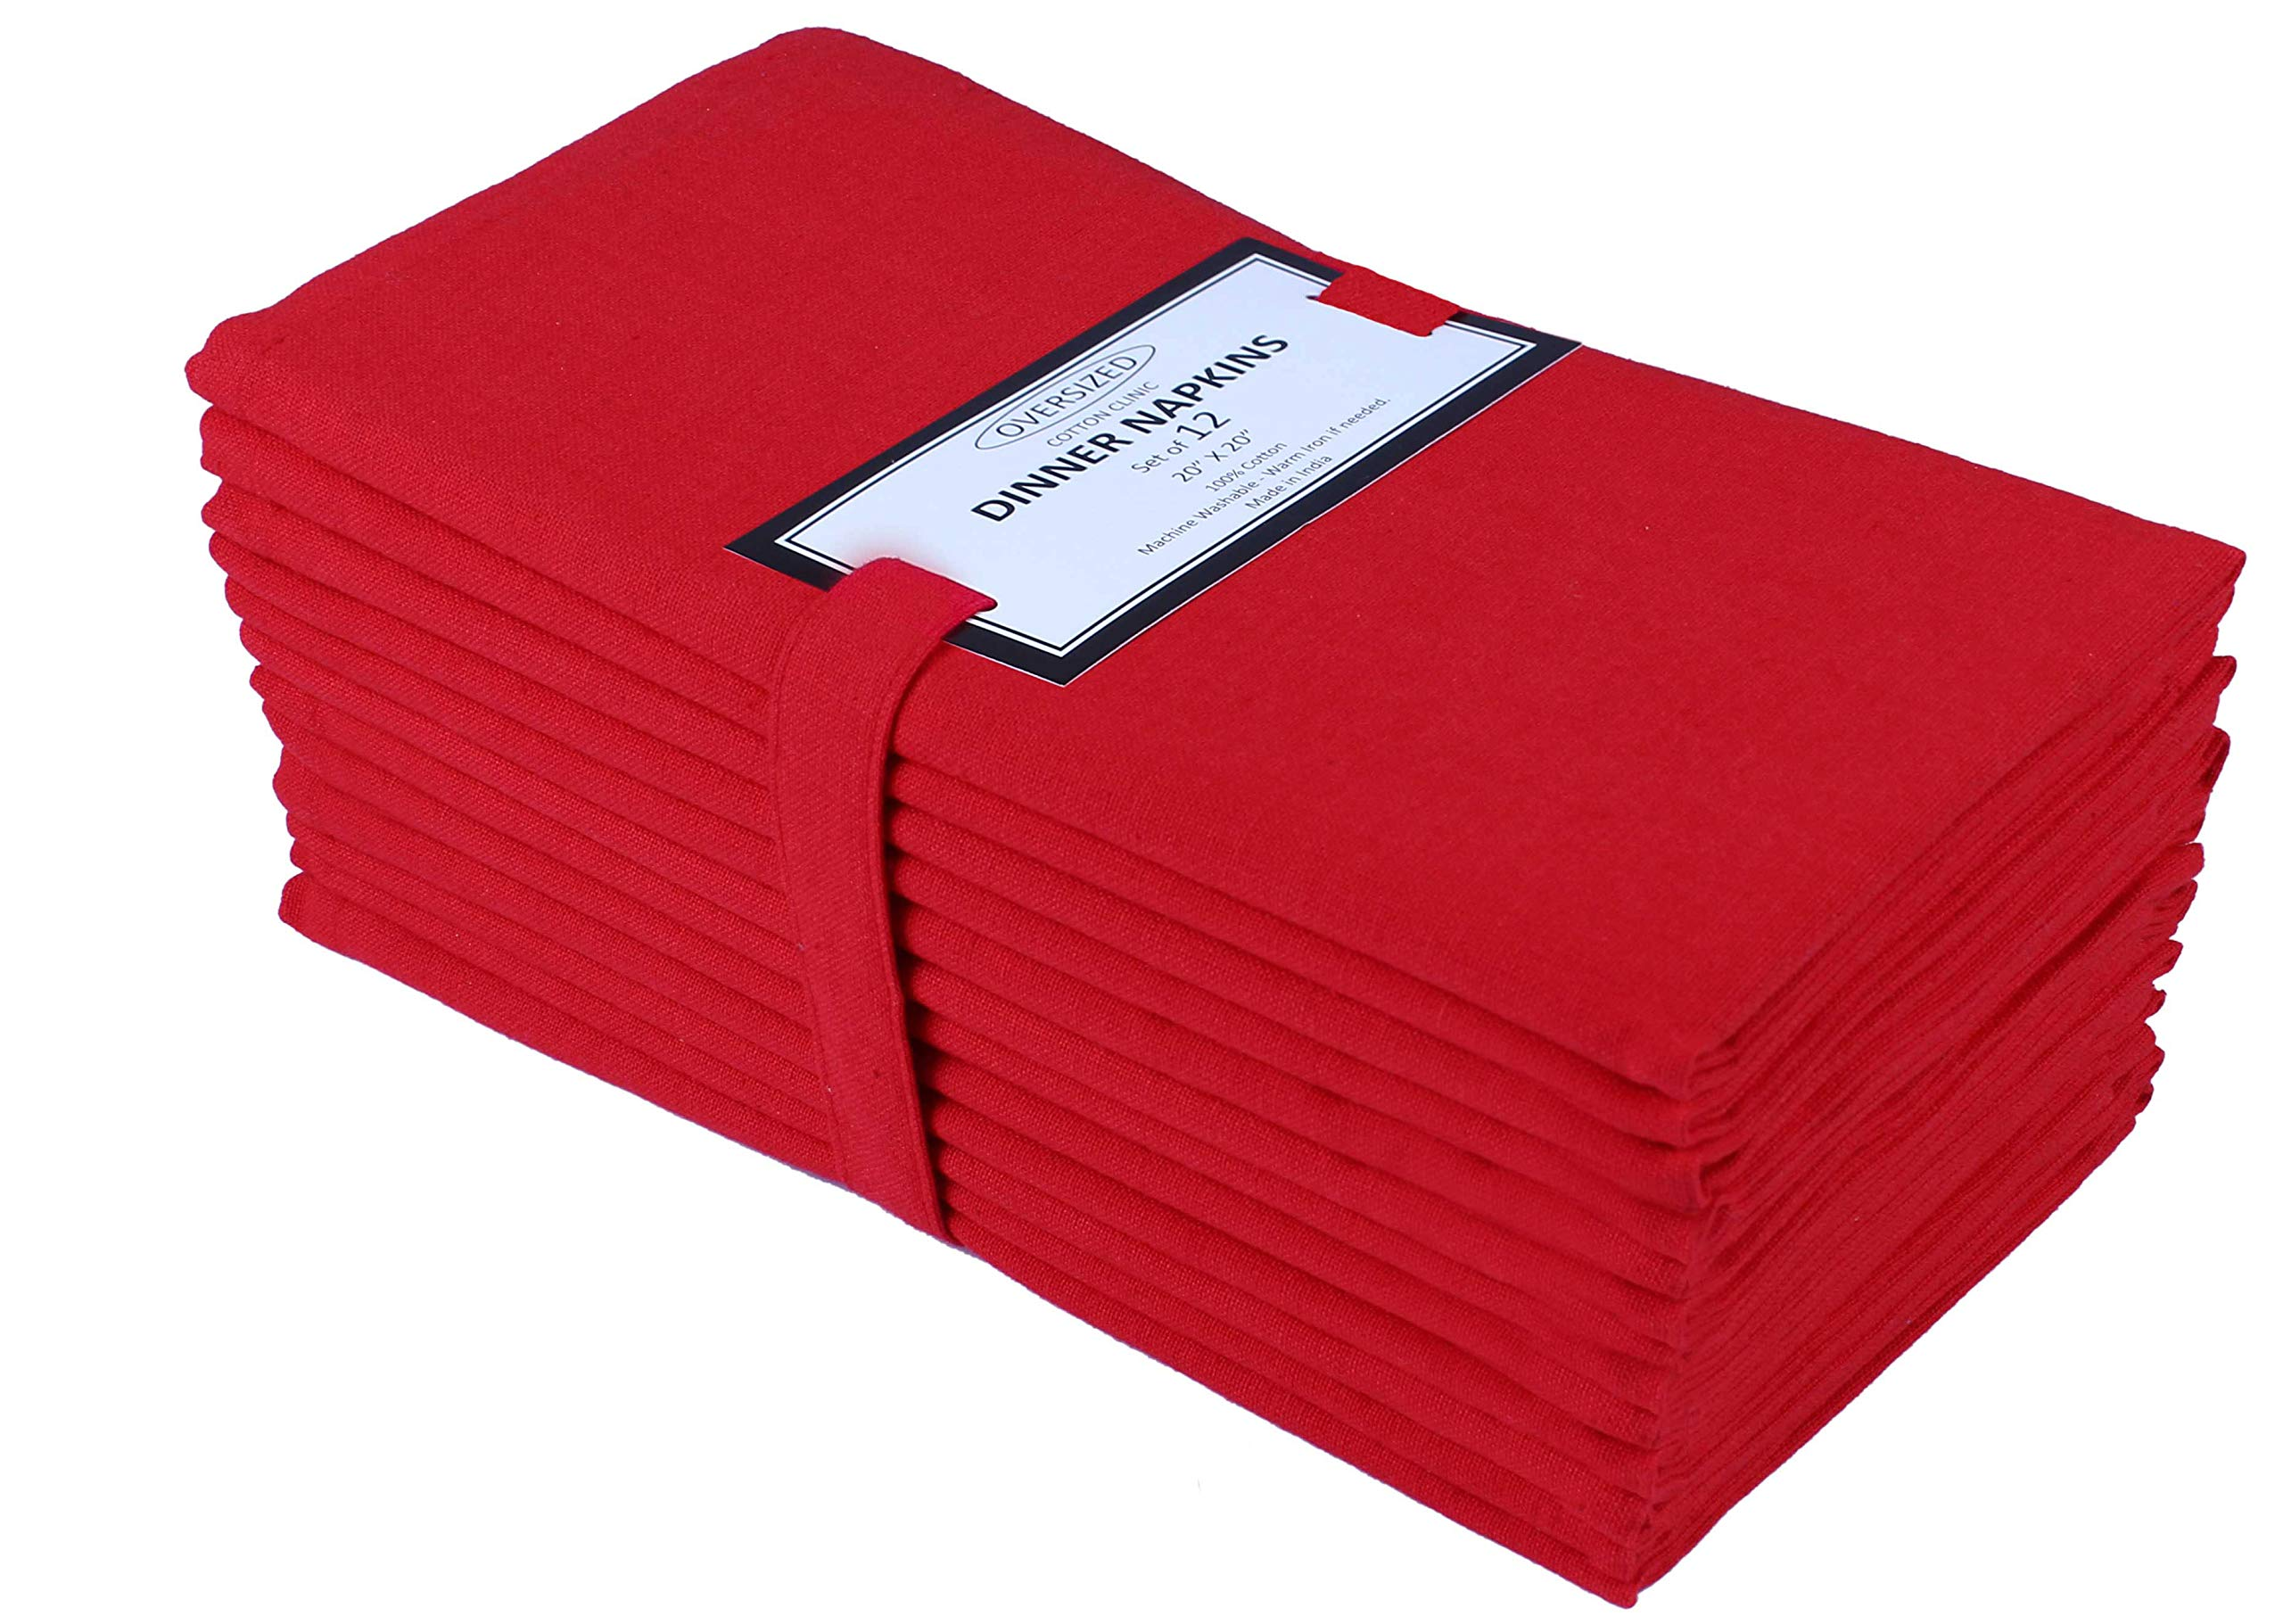 Cloth Napkin in Solid Cotton Fabric- Red Color, Oversized 20x20, Wedding Napkins,Cocktails Napkins,Tailored Mitered Corners & Generous Hem, Machine Washable Dinner Napkins Set of 12